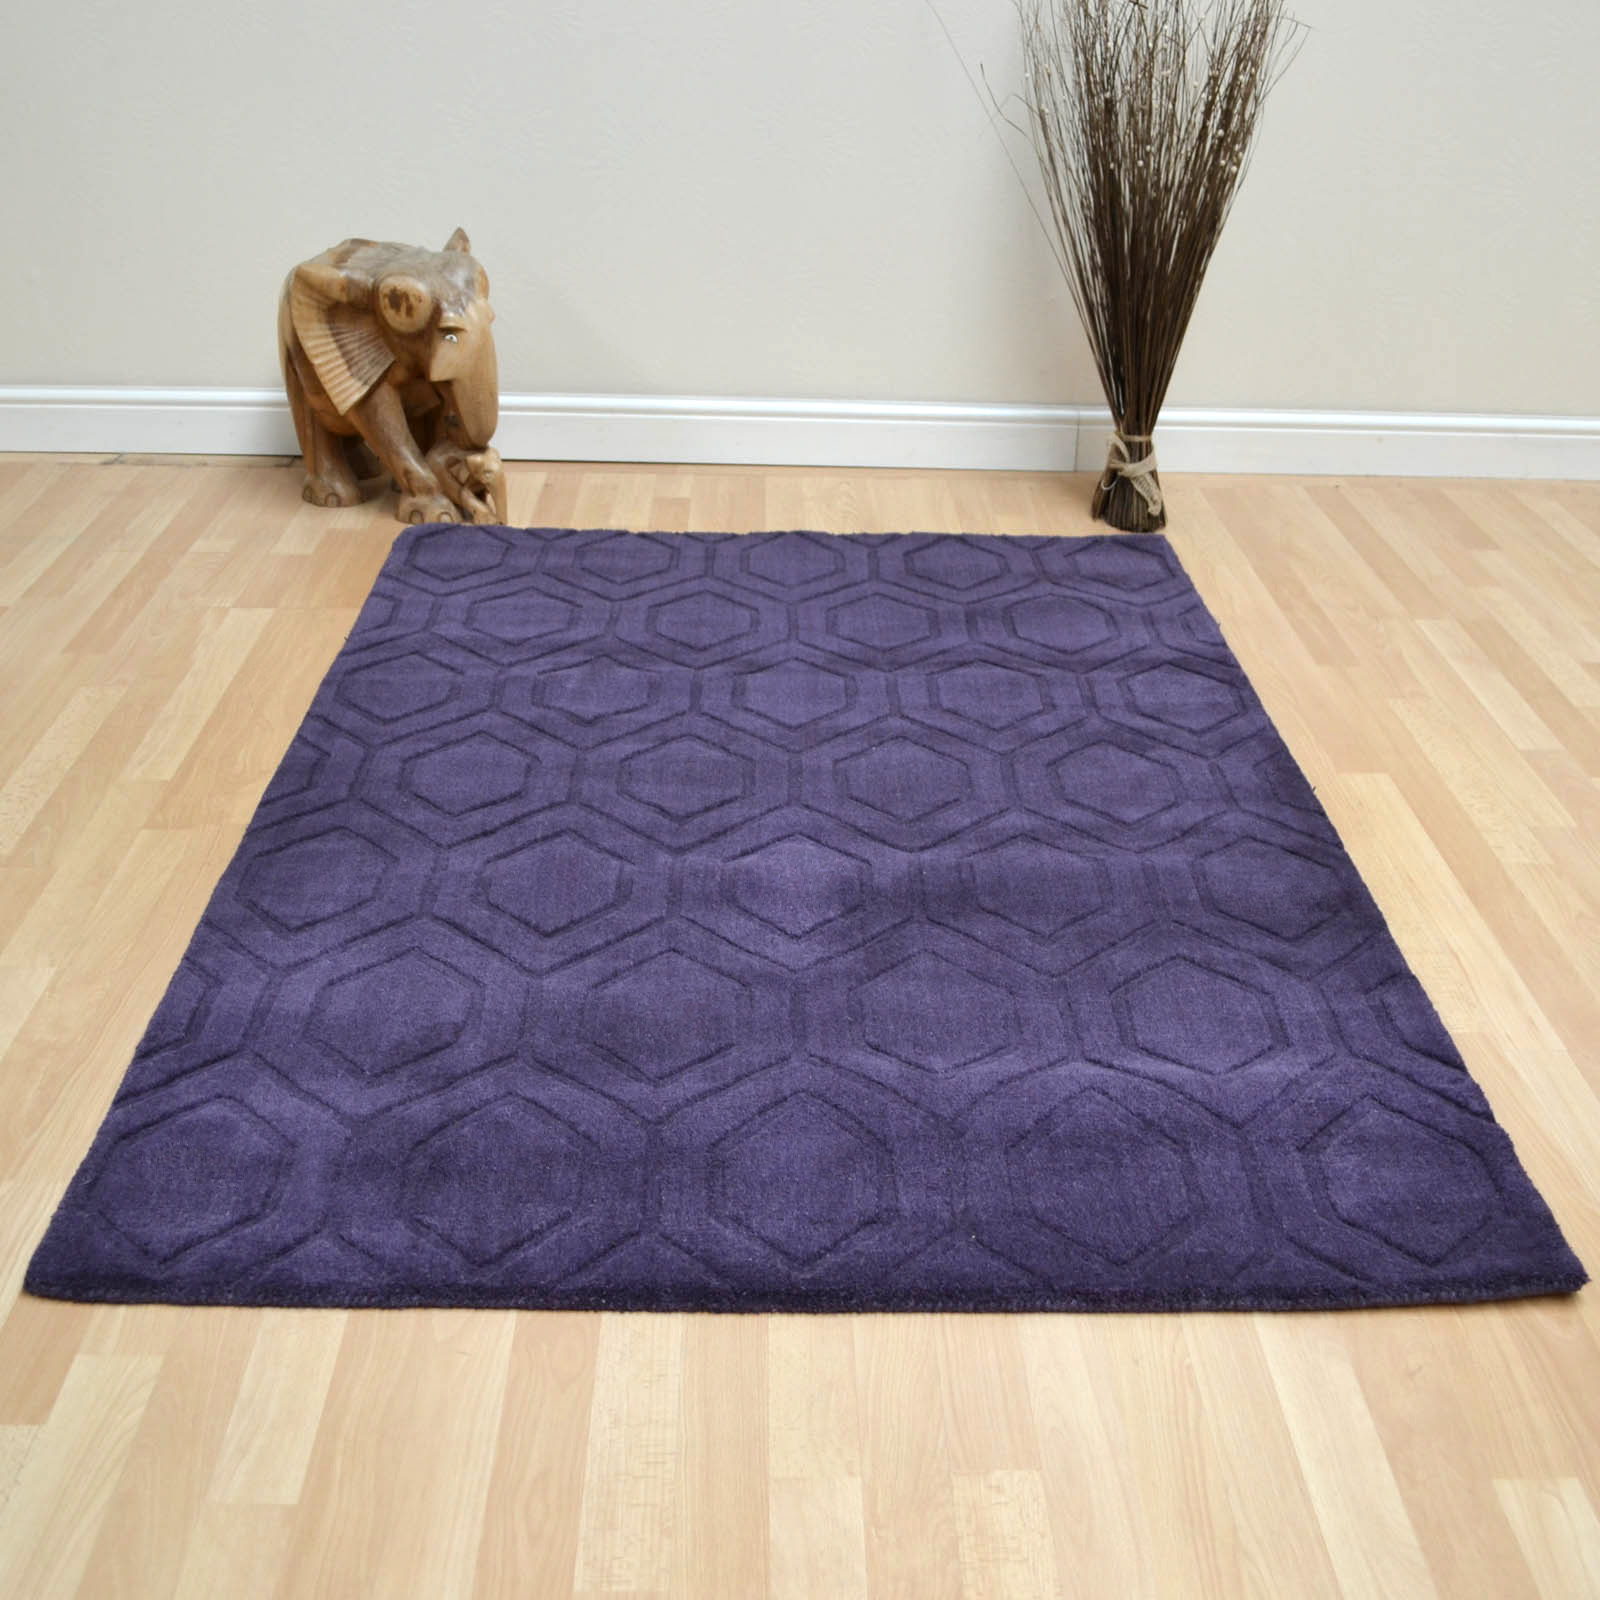 Zante Rugs in Purple